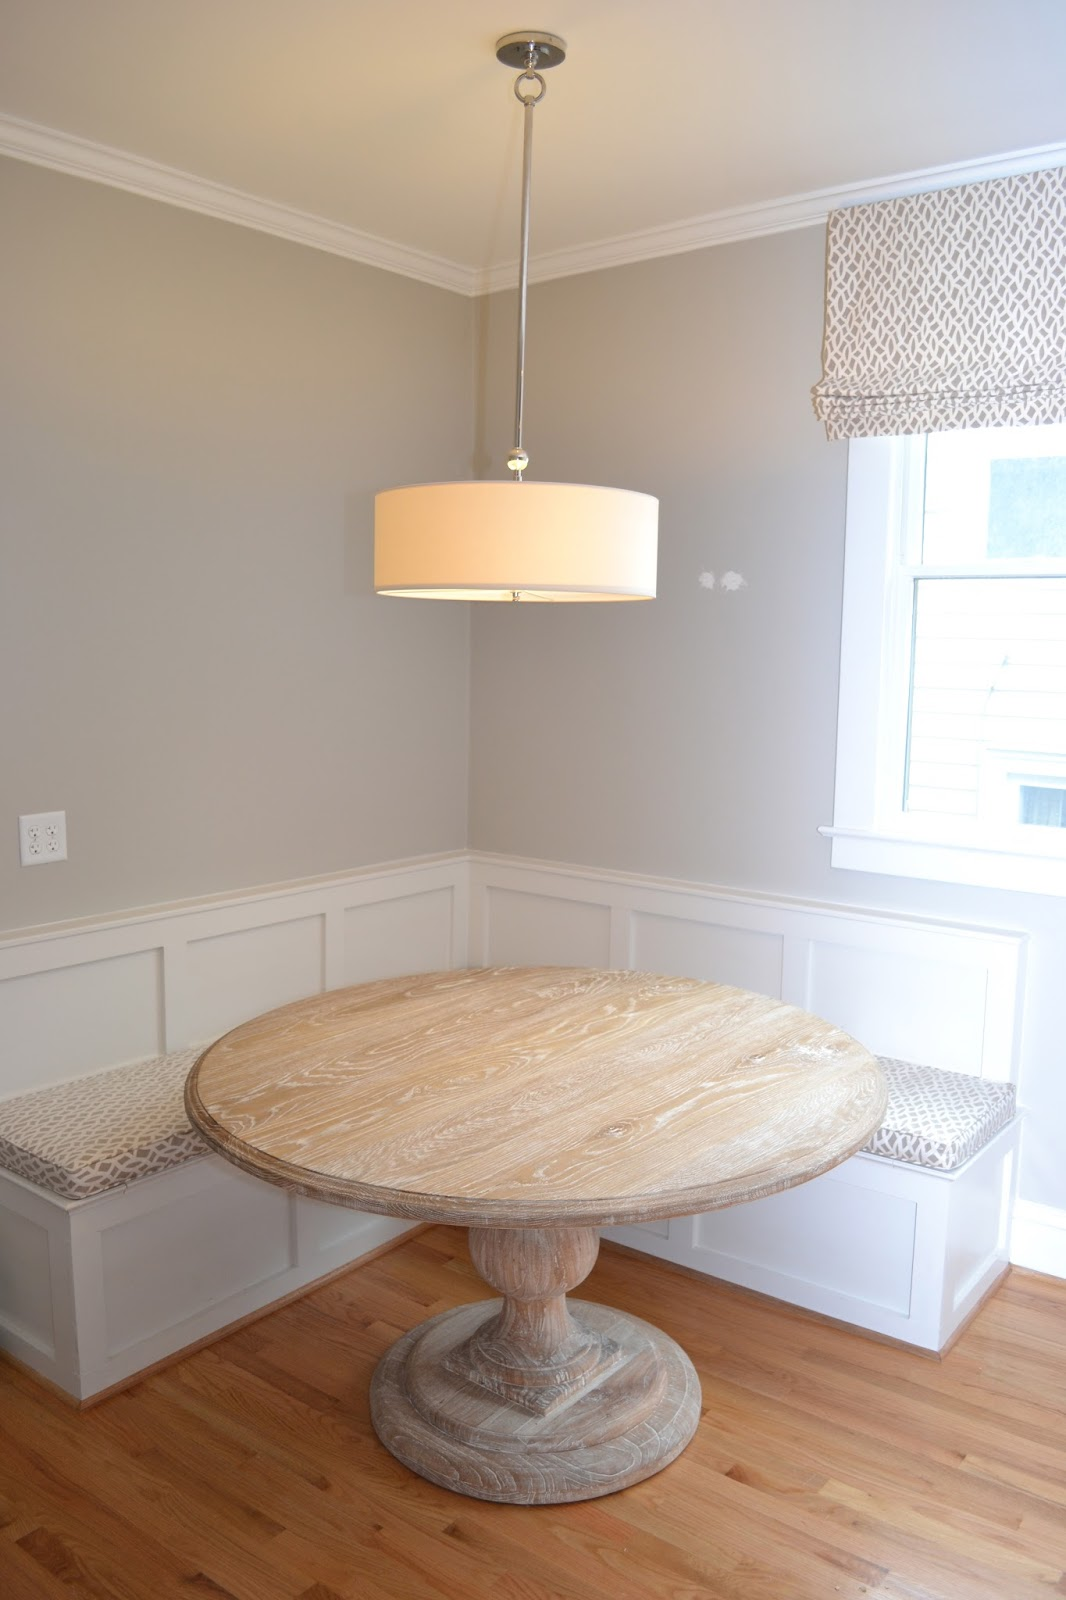 Lucy williams interior design blog before and after magnolia kitchen facelift Corner dining table